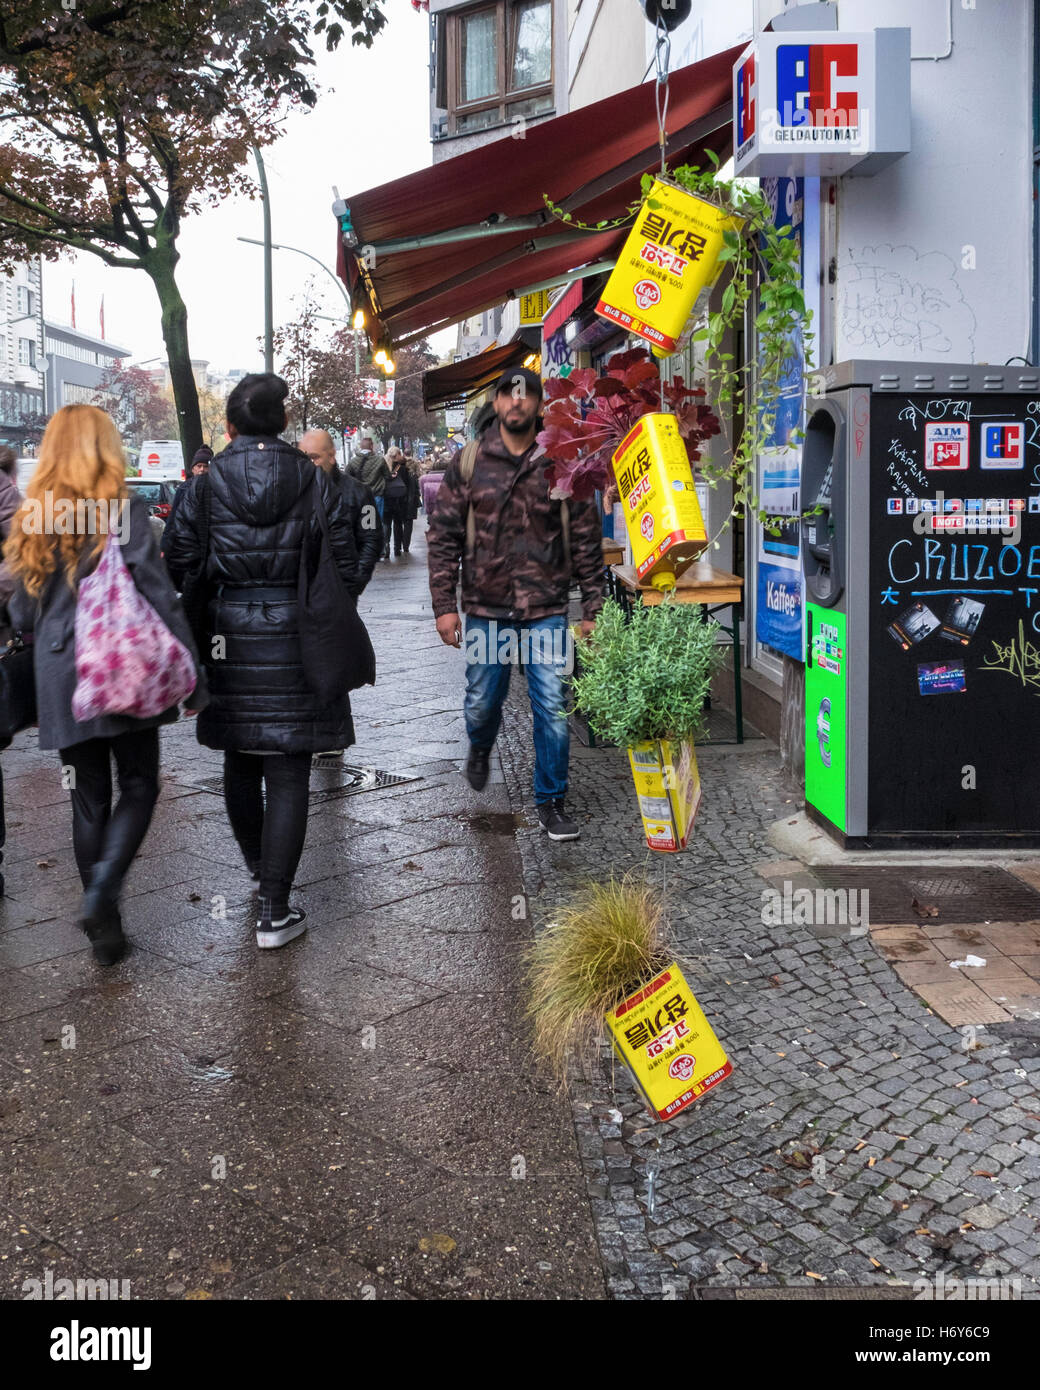 Unusual plant containers, planters. Quirky empty Sesame oil cans hold plants on a city street, Kreuzberg, Berlin - Stock Image